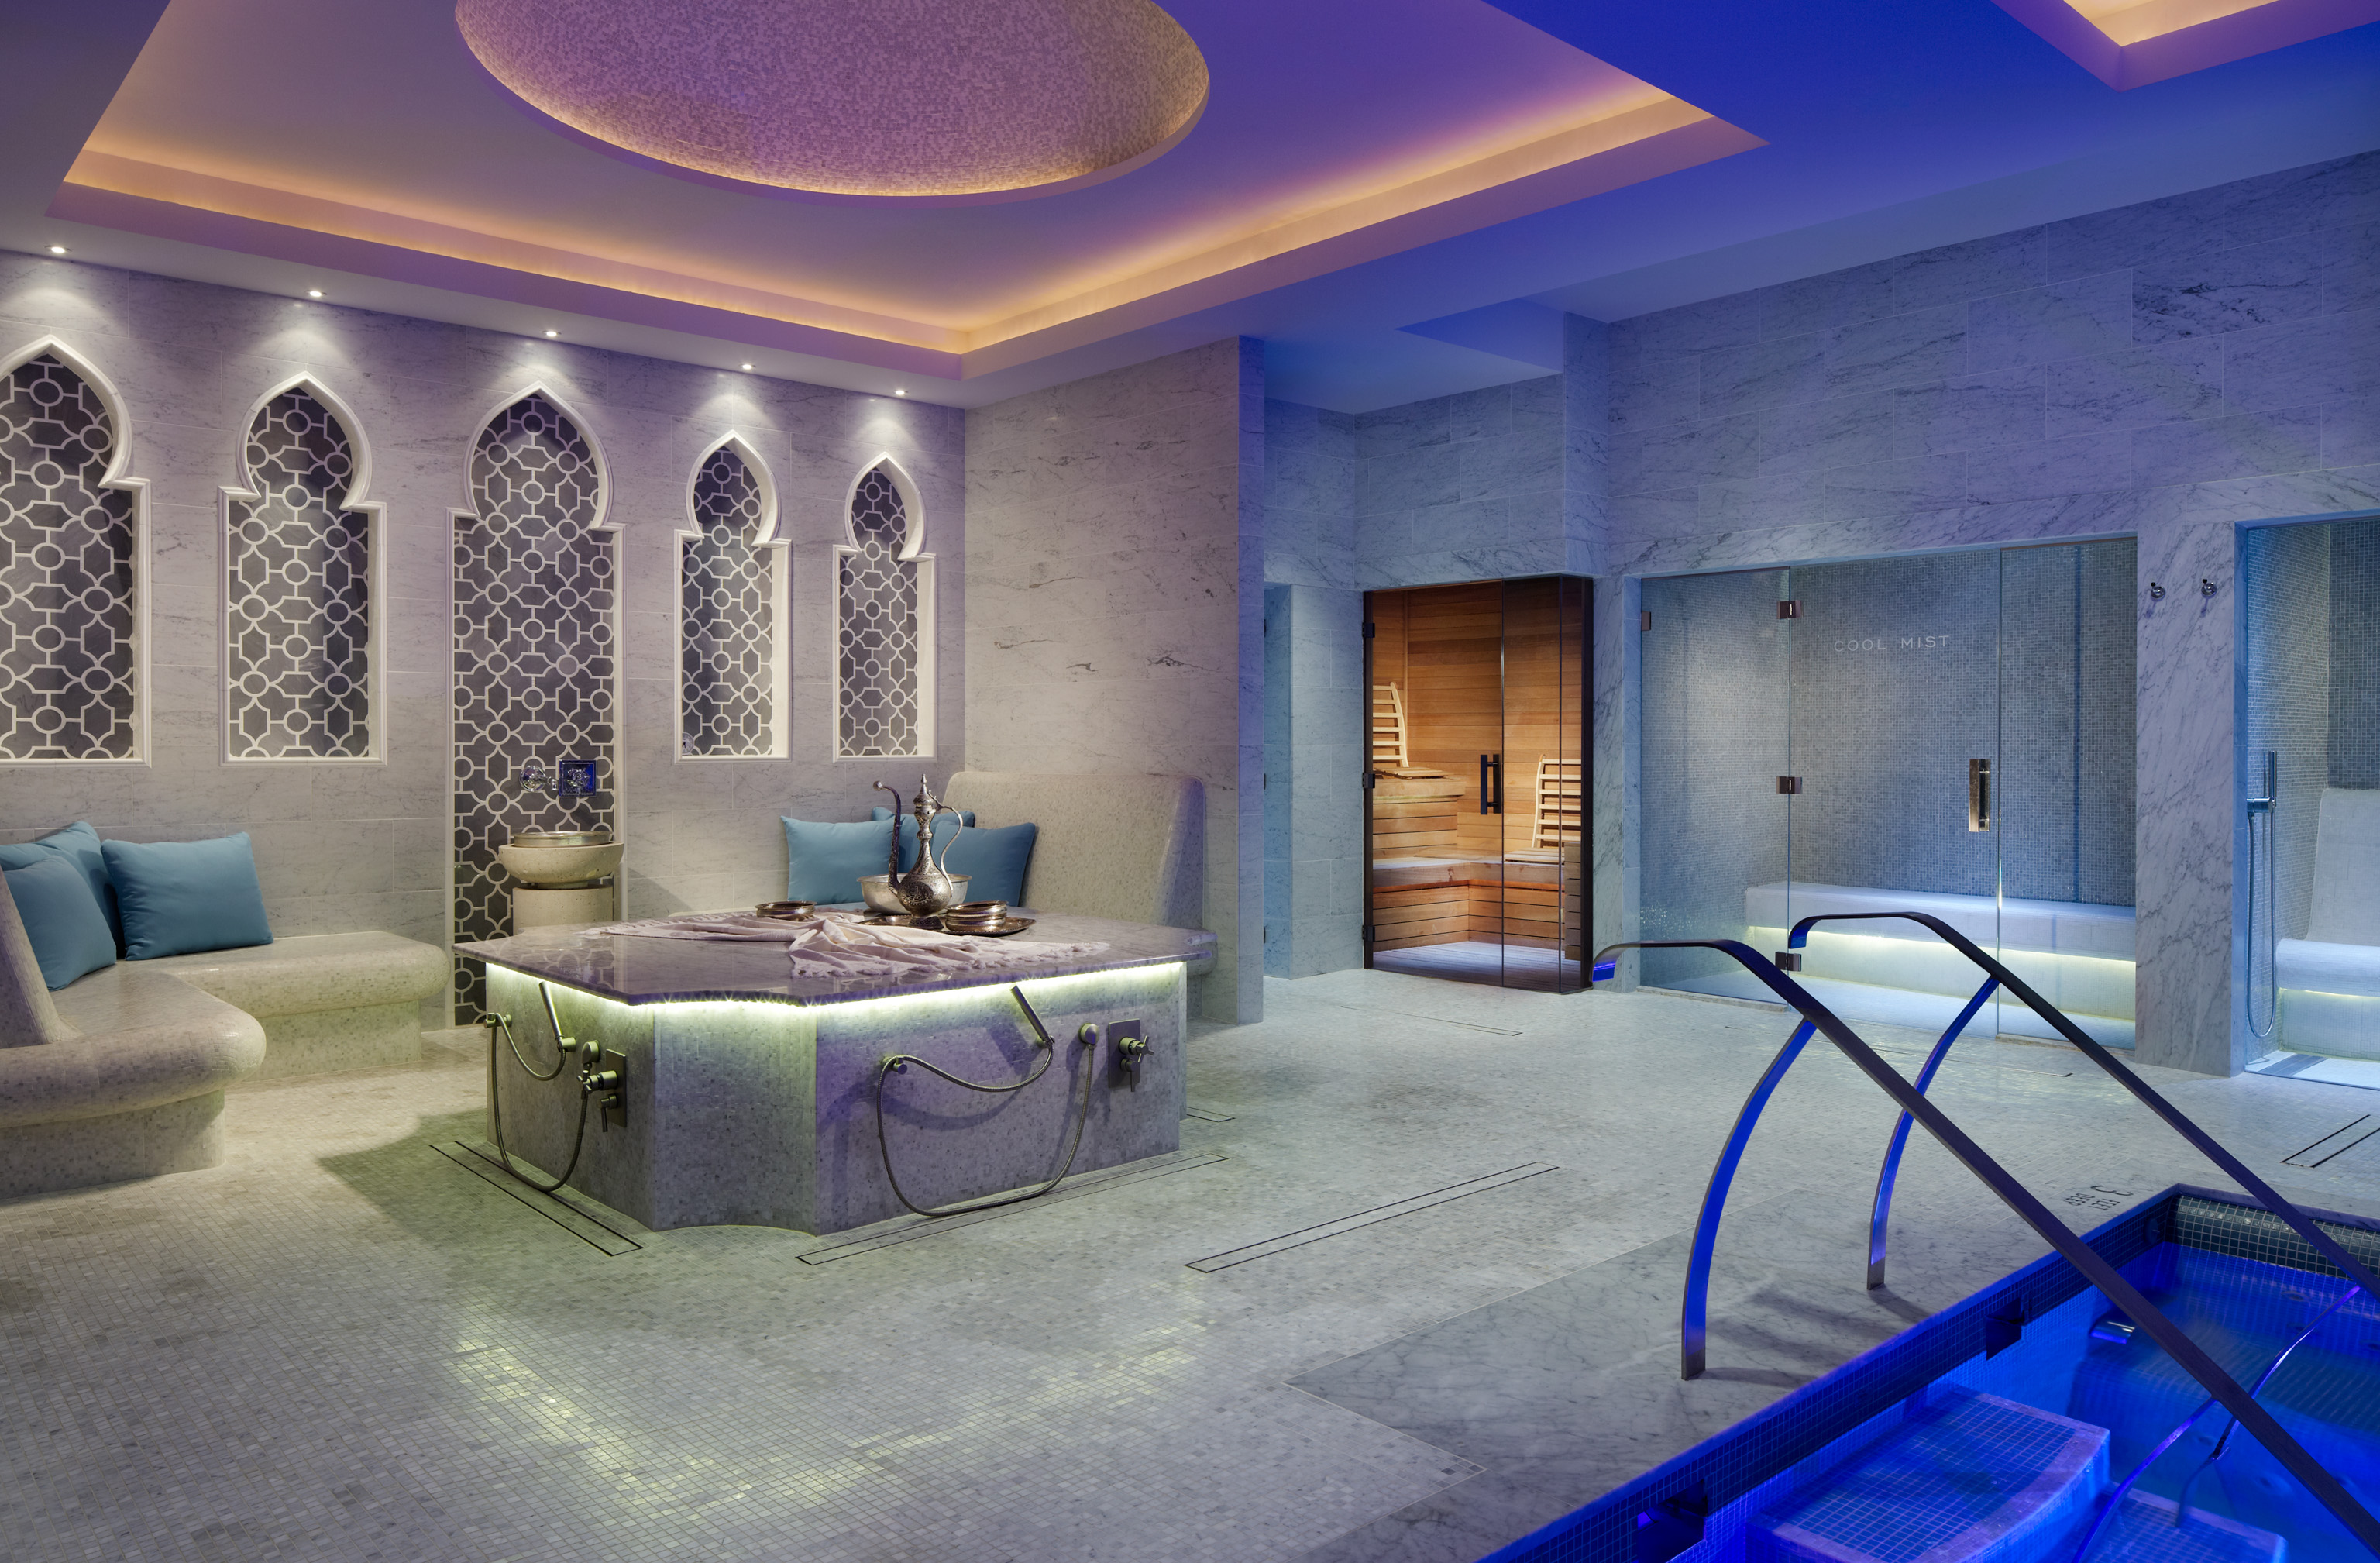 The spa at glenmere mansion for Weekend spa getaways ny